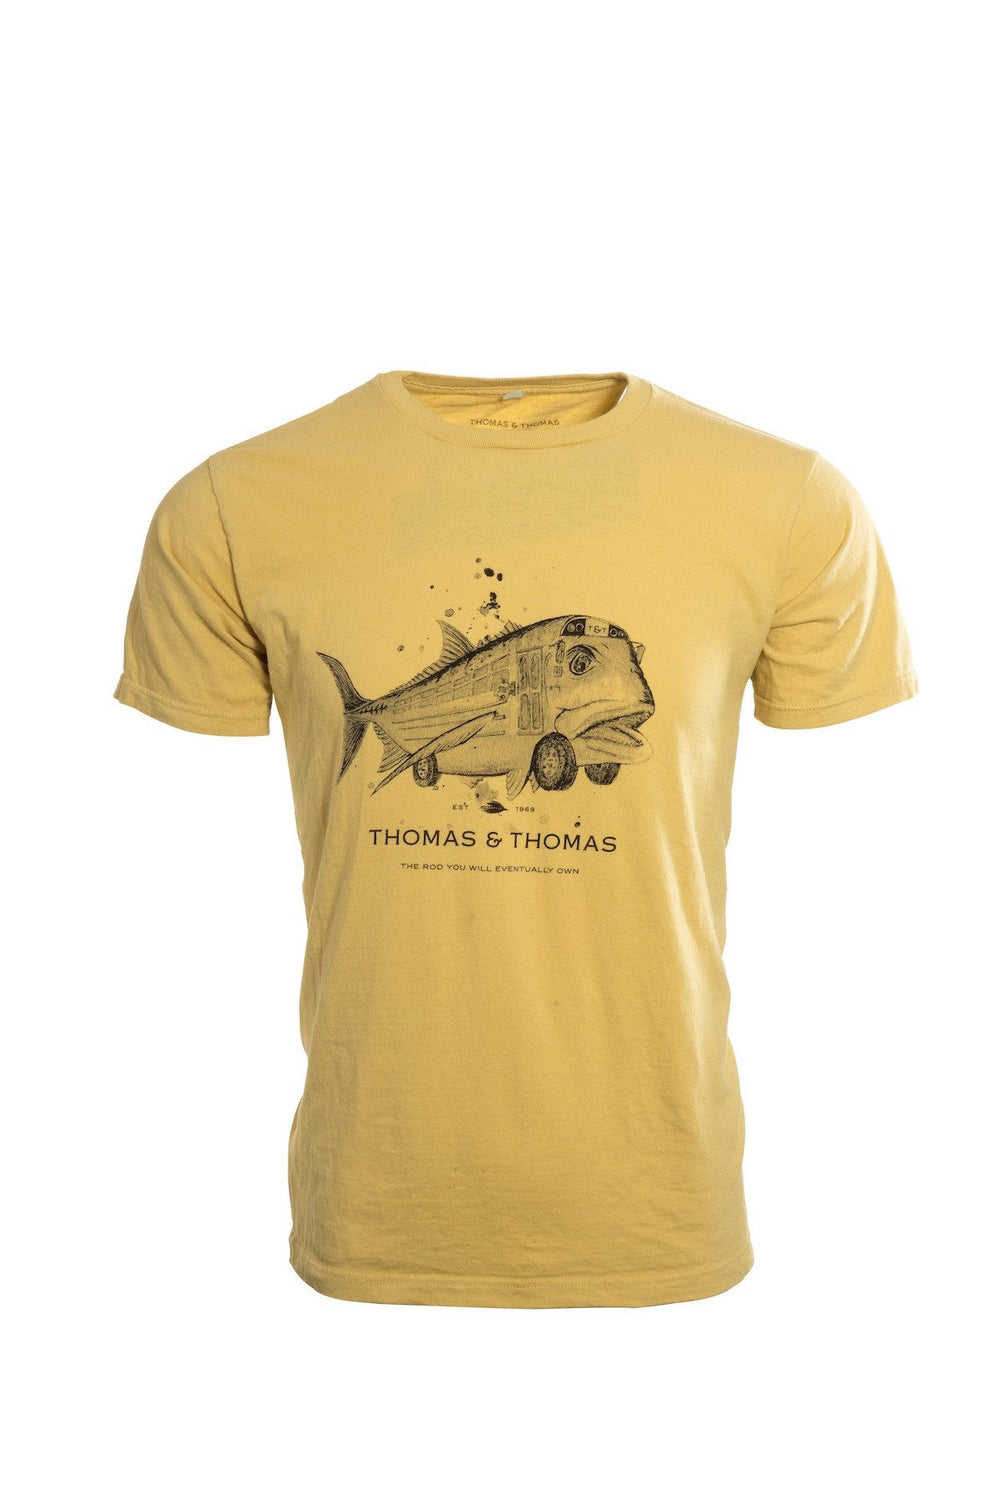 Thomas and Thomas yellow GT Bus tee shirt.